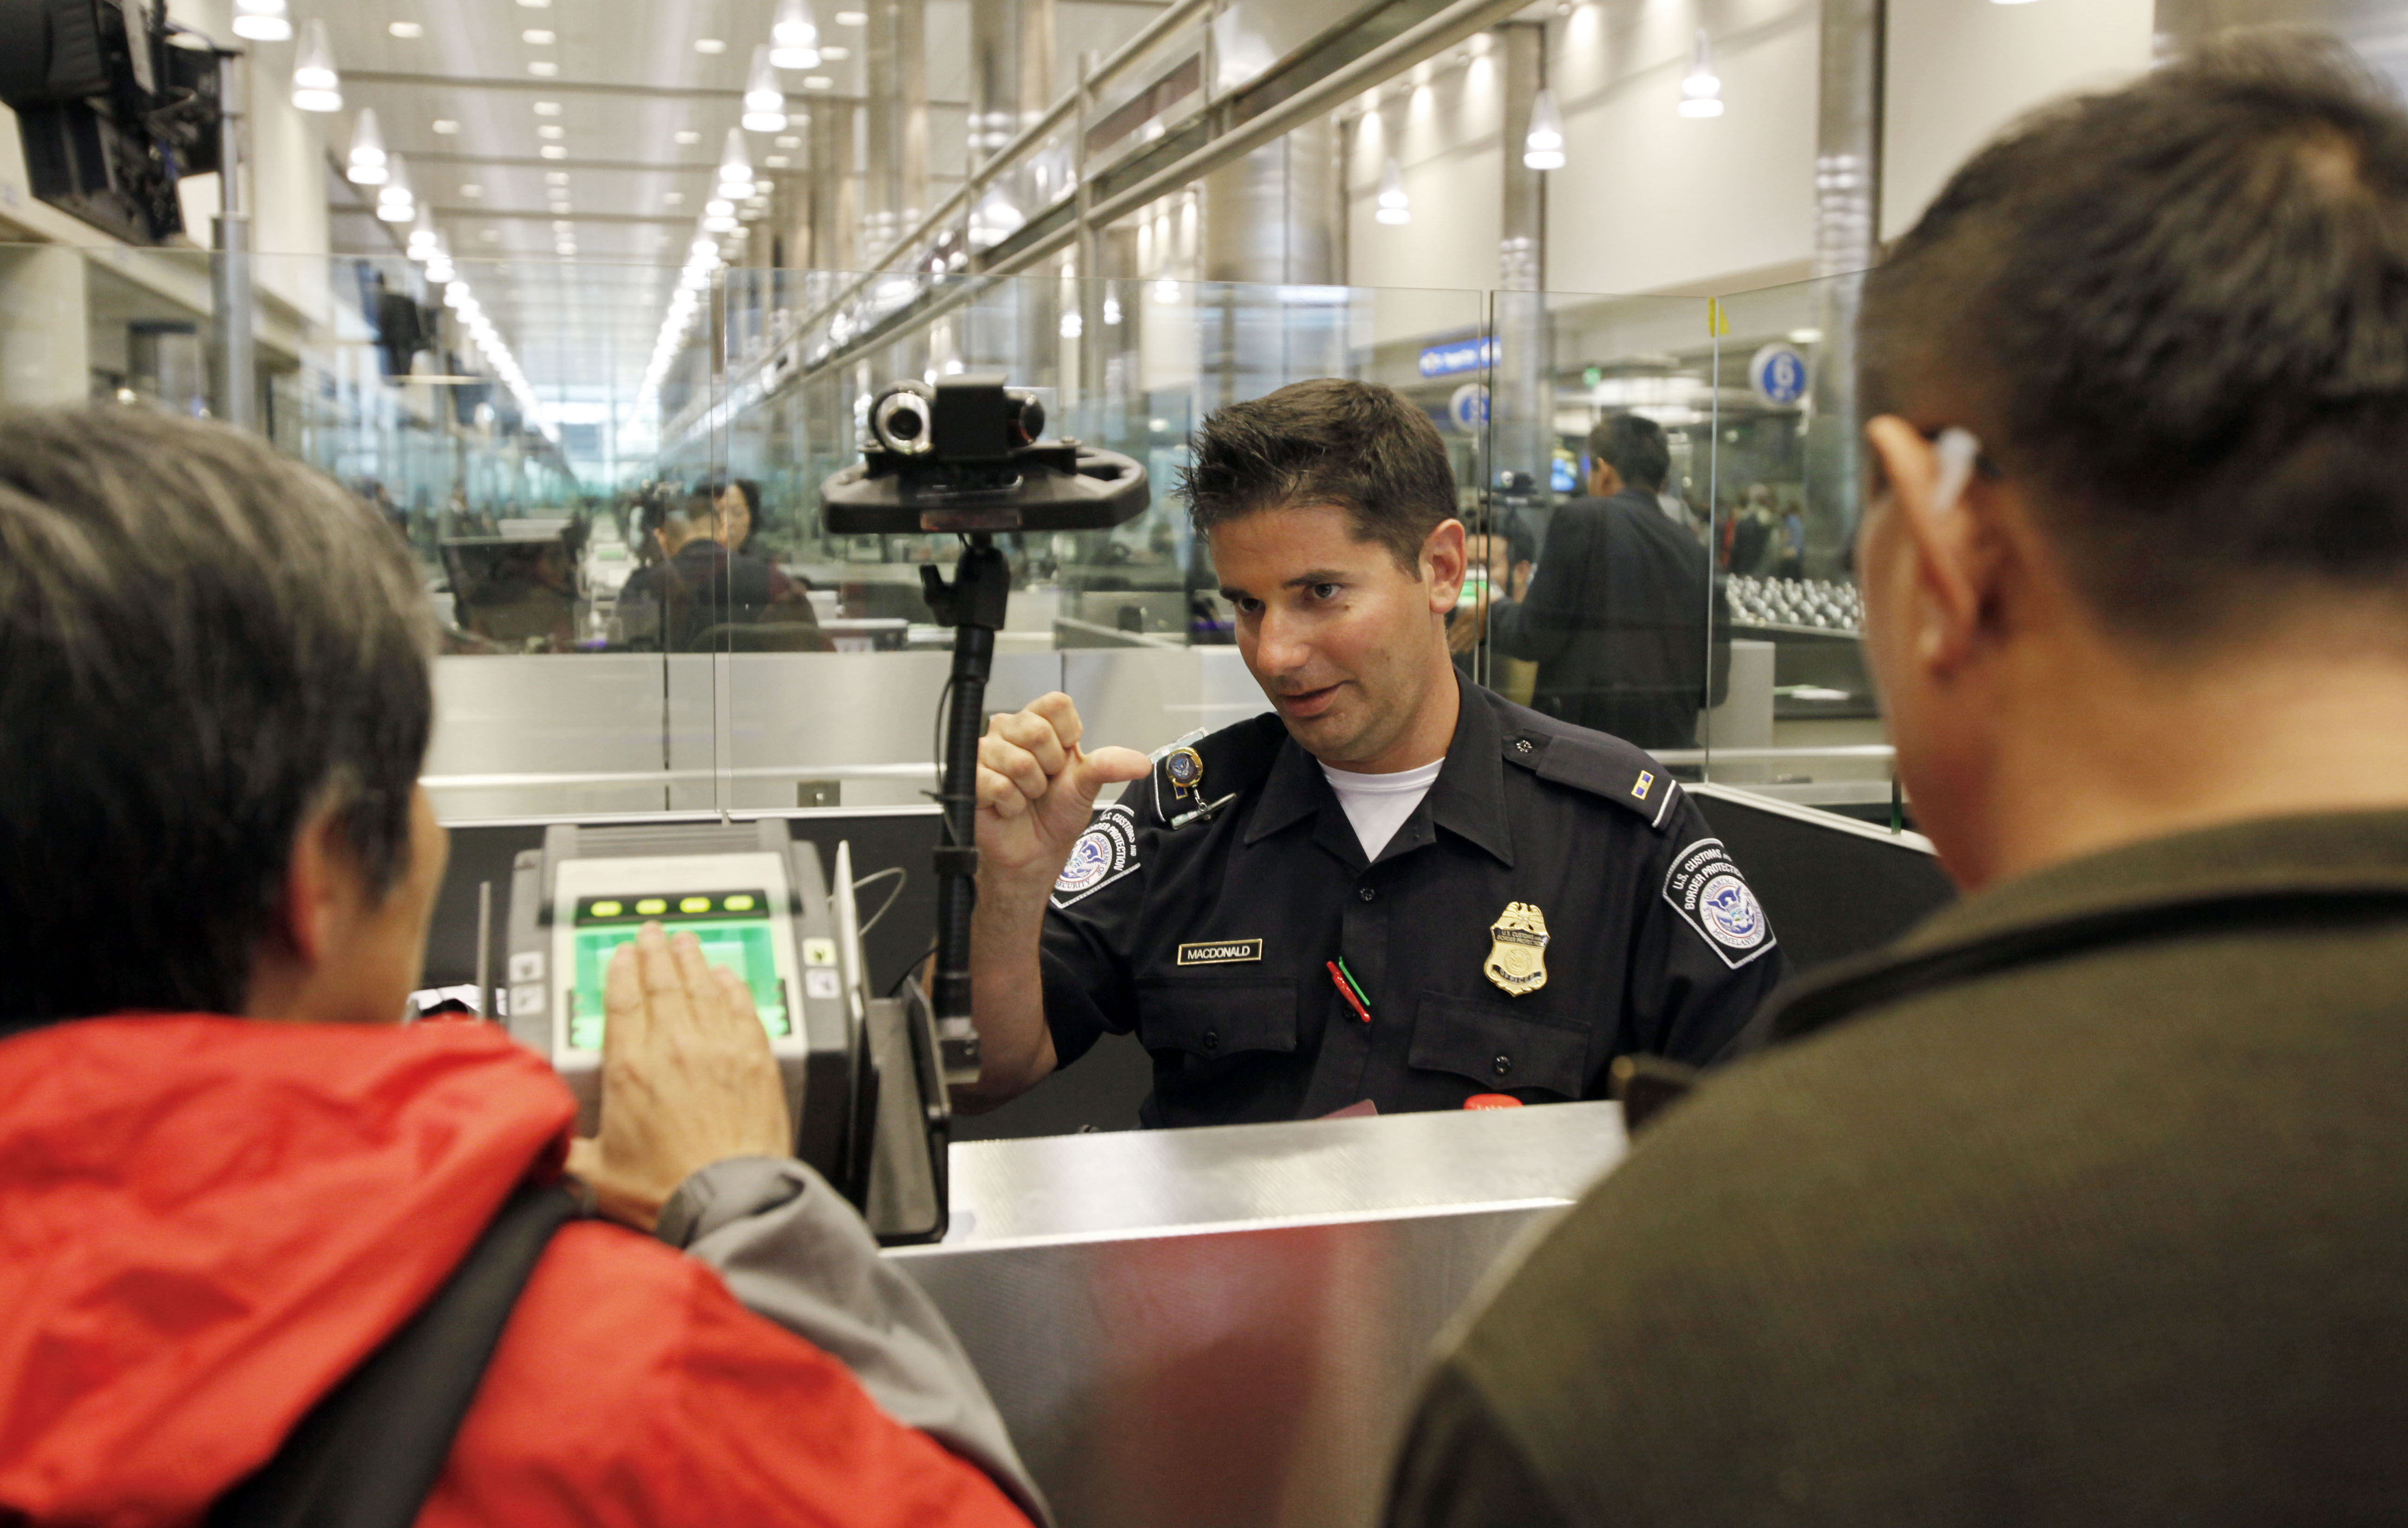 U.s Immigration Officer U.S. Aims To Track For...